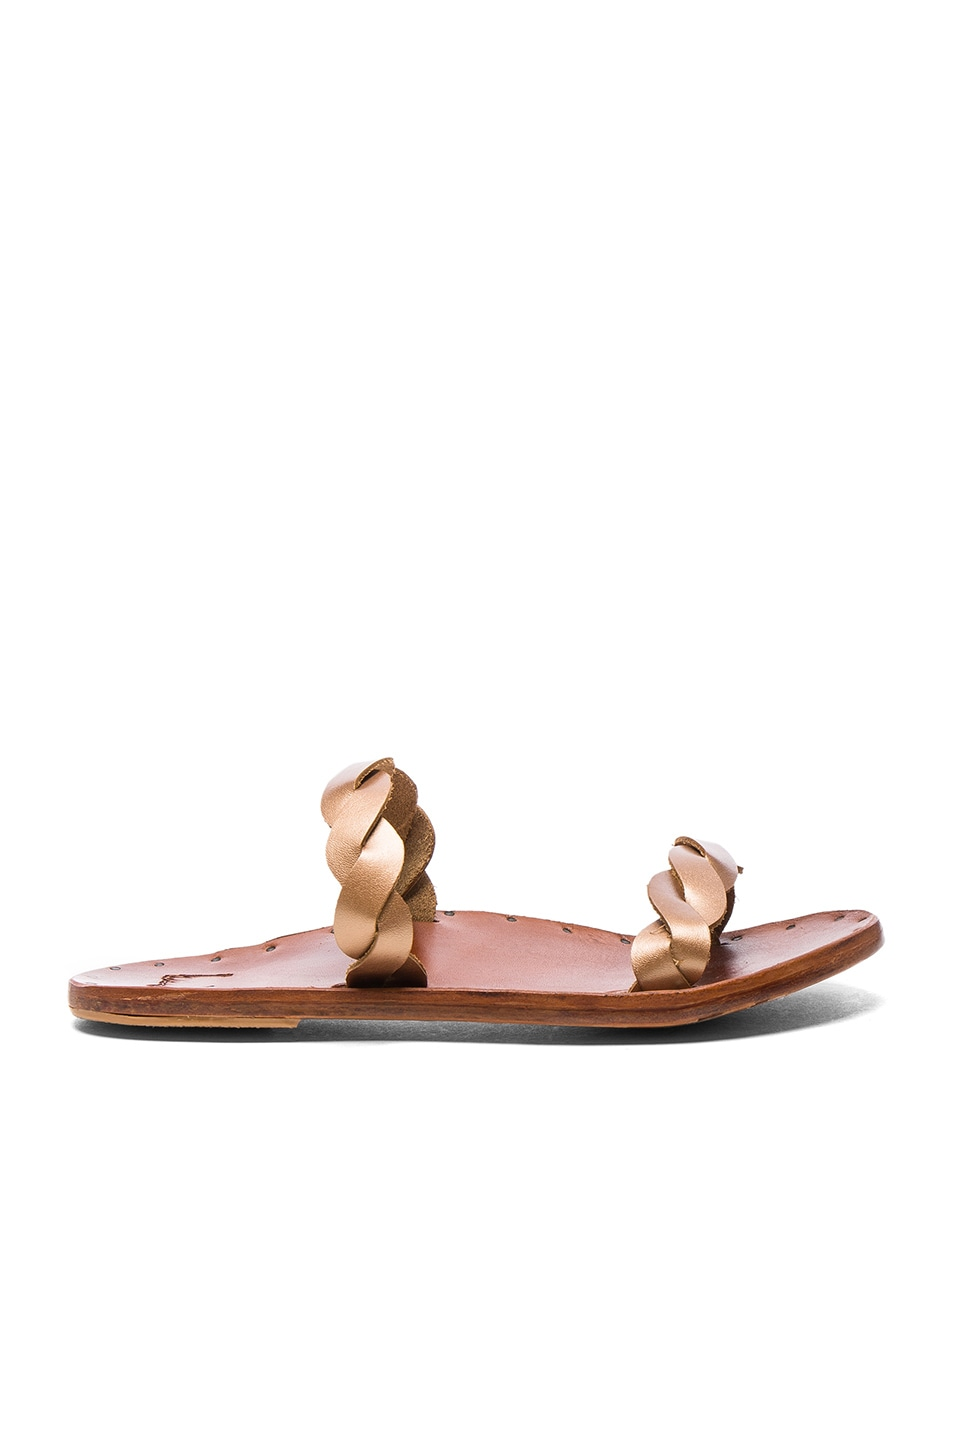 Image 1 of Beek The Pipit Sandals in Rose Gold & Tan